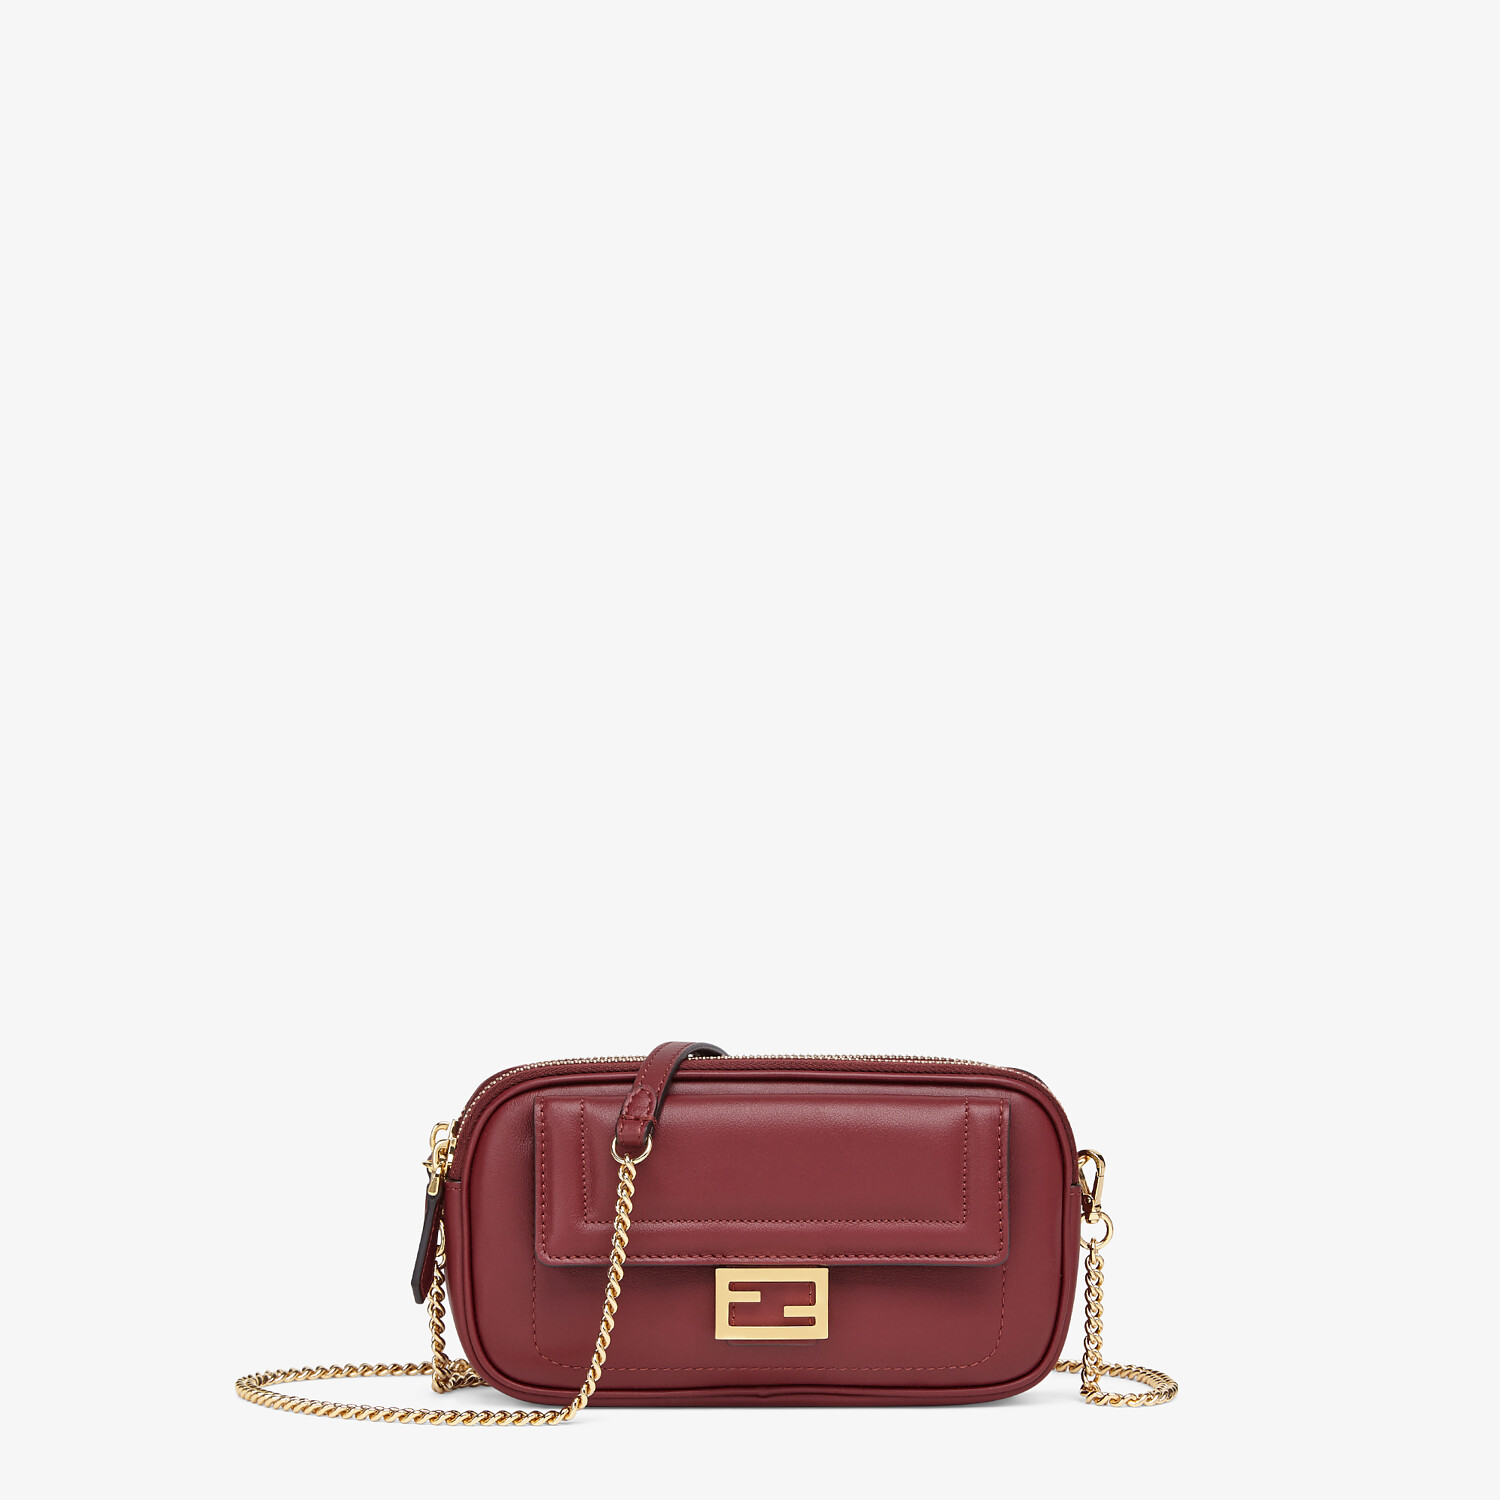 FENDI EASY 2 BAGUETTE - Minibag in pelle bordeaux - vista 1 dettaglio